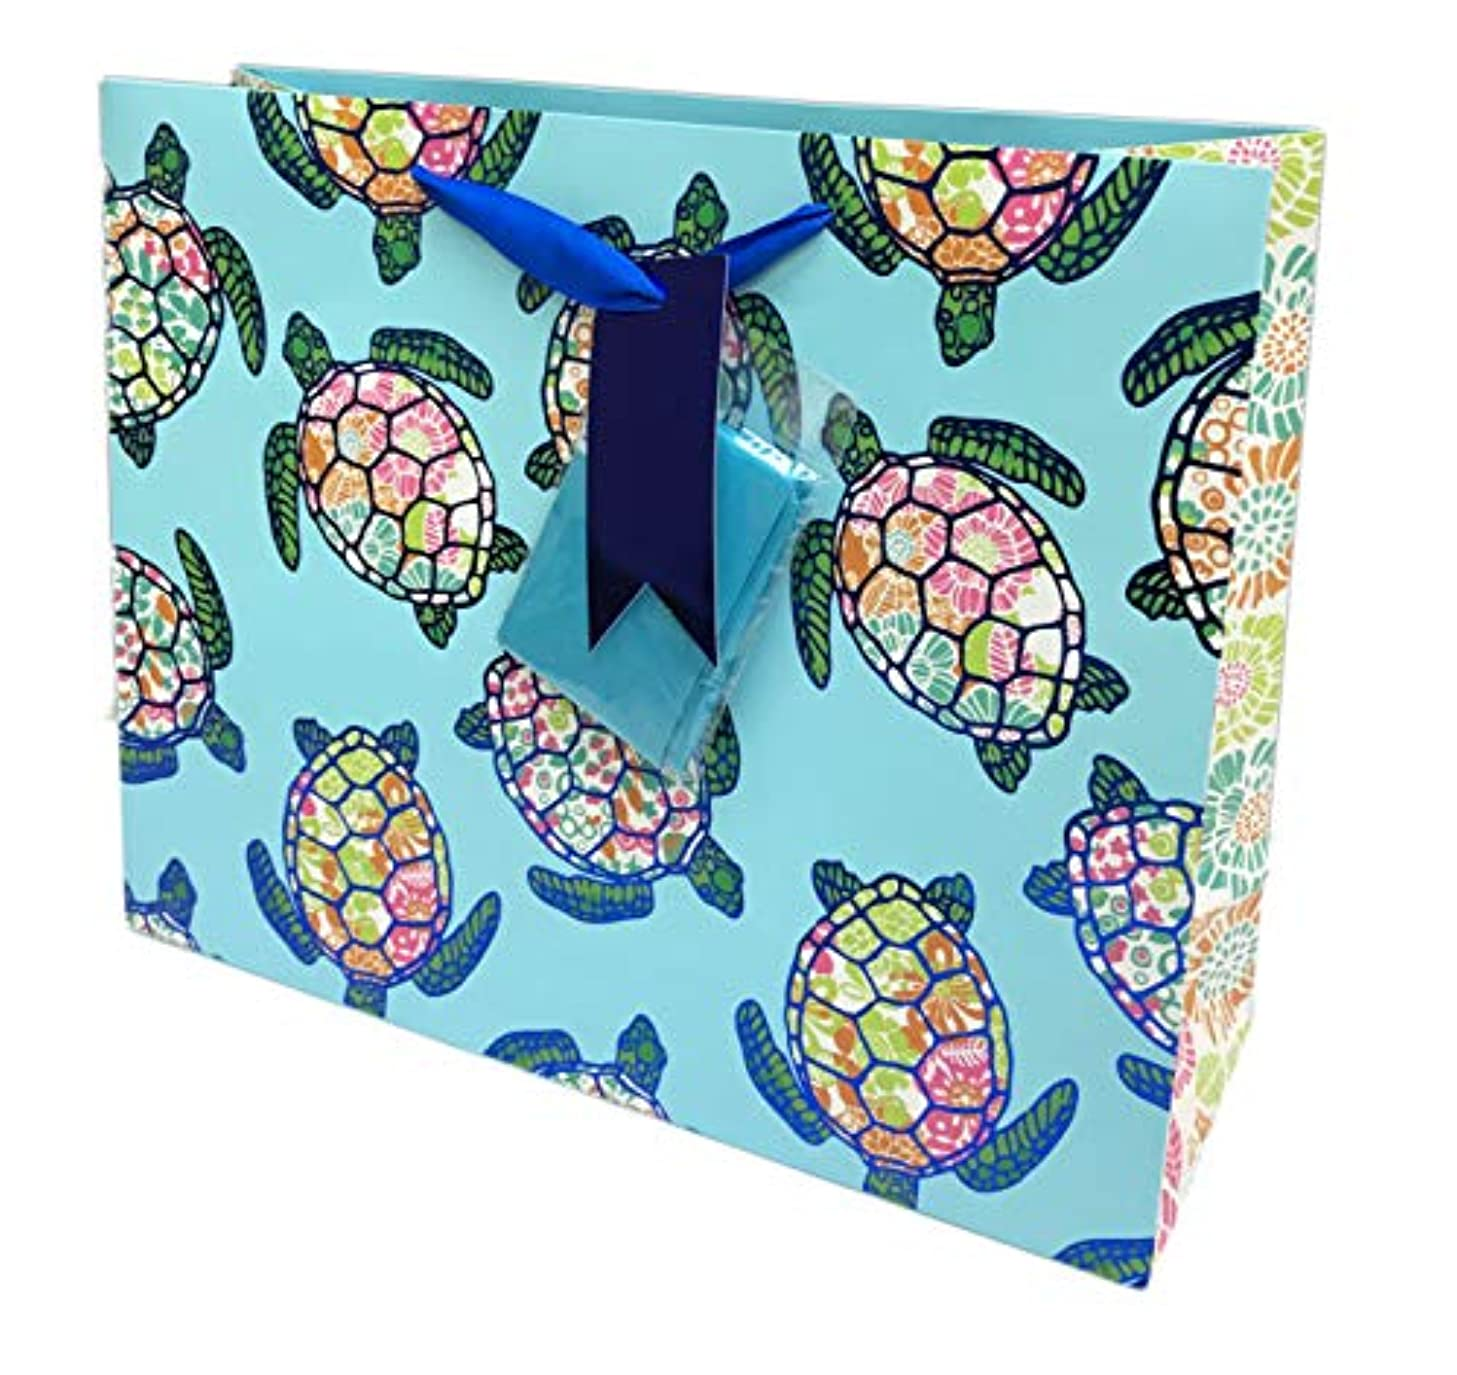 Whimsical Floral Sea Turtles Themed Birthday Party Celebration Gift Bag & Tissue Paper